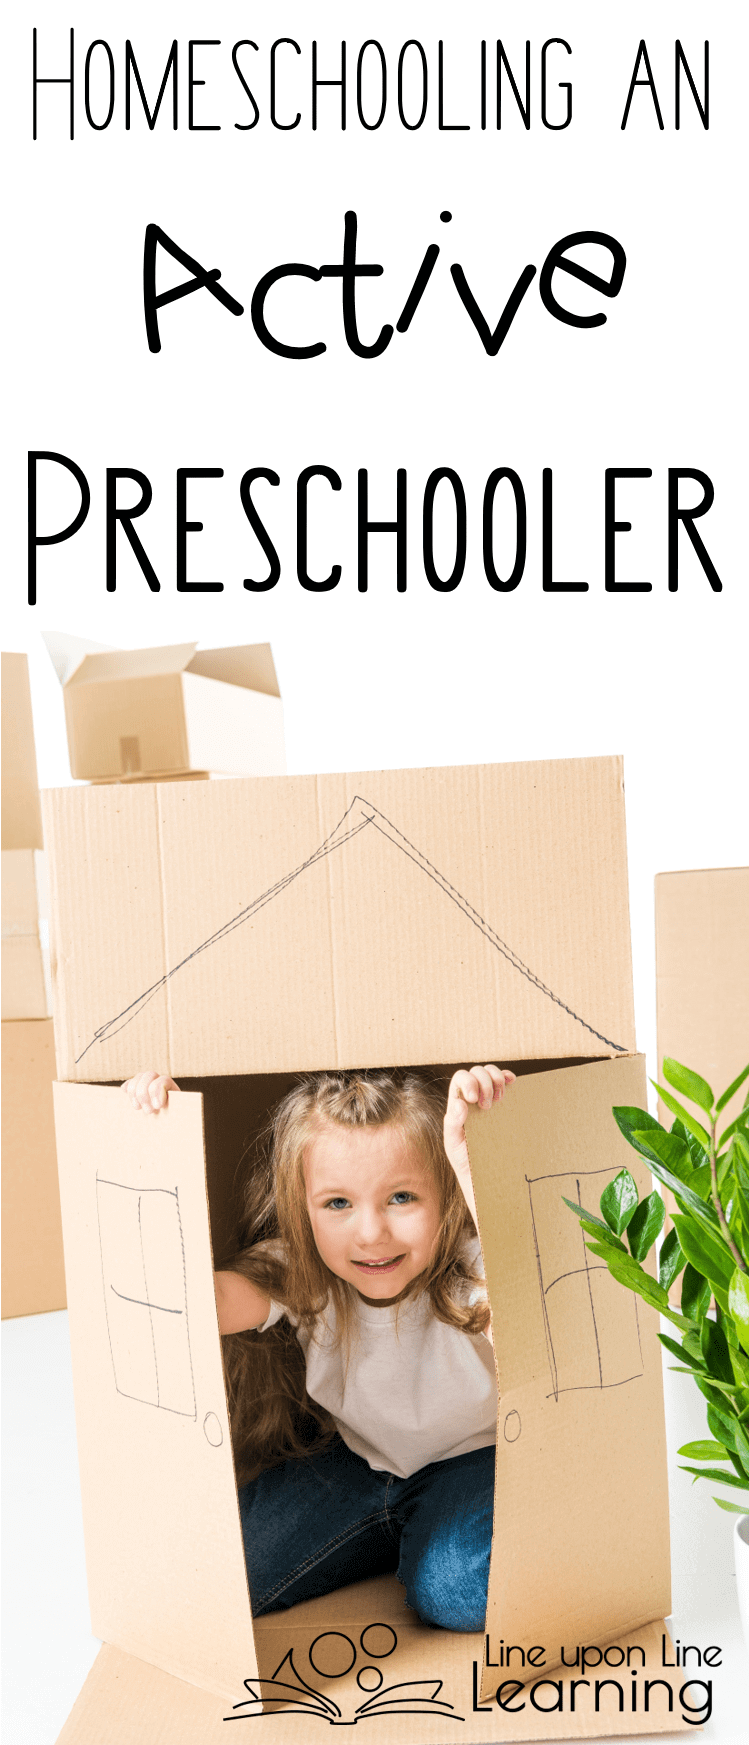 As you homeschool an active preschooler, let the child explore, imagine, and create. This is what preschool should be about, and homeschooling preschool is the perfect way to nurture creativity!